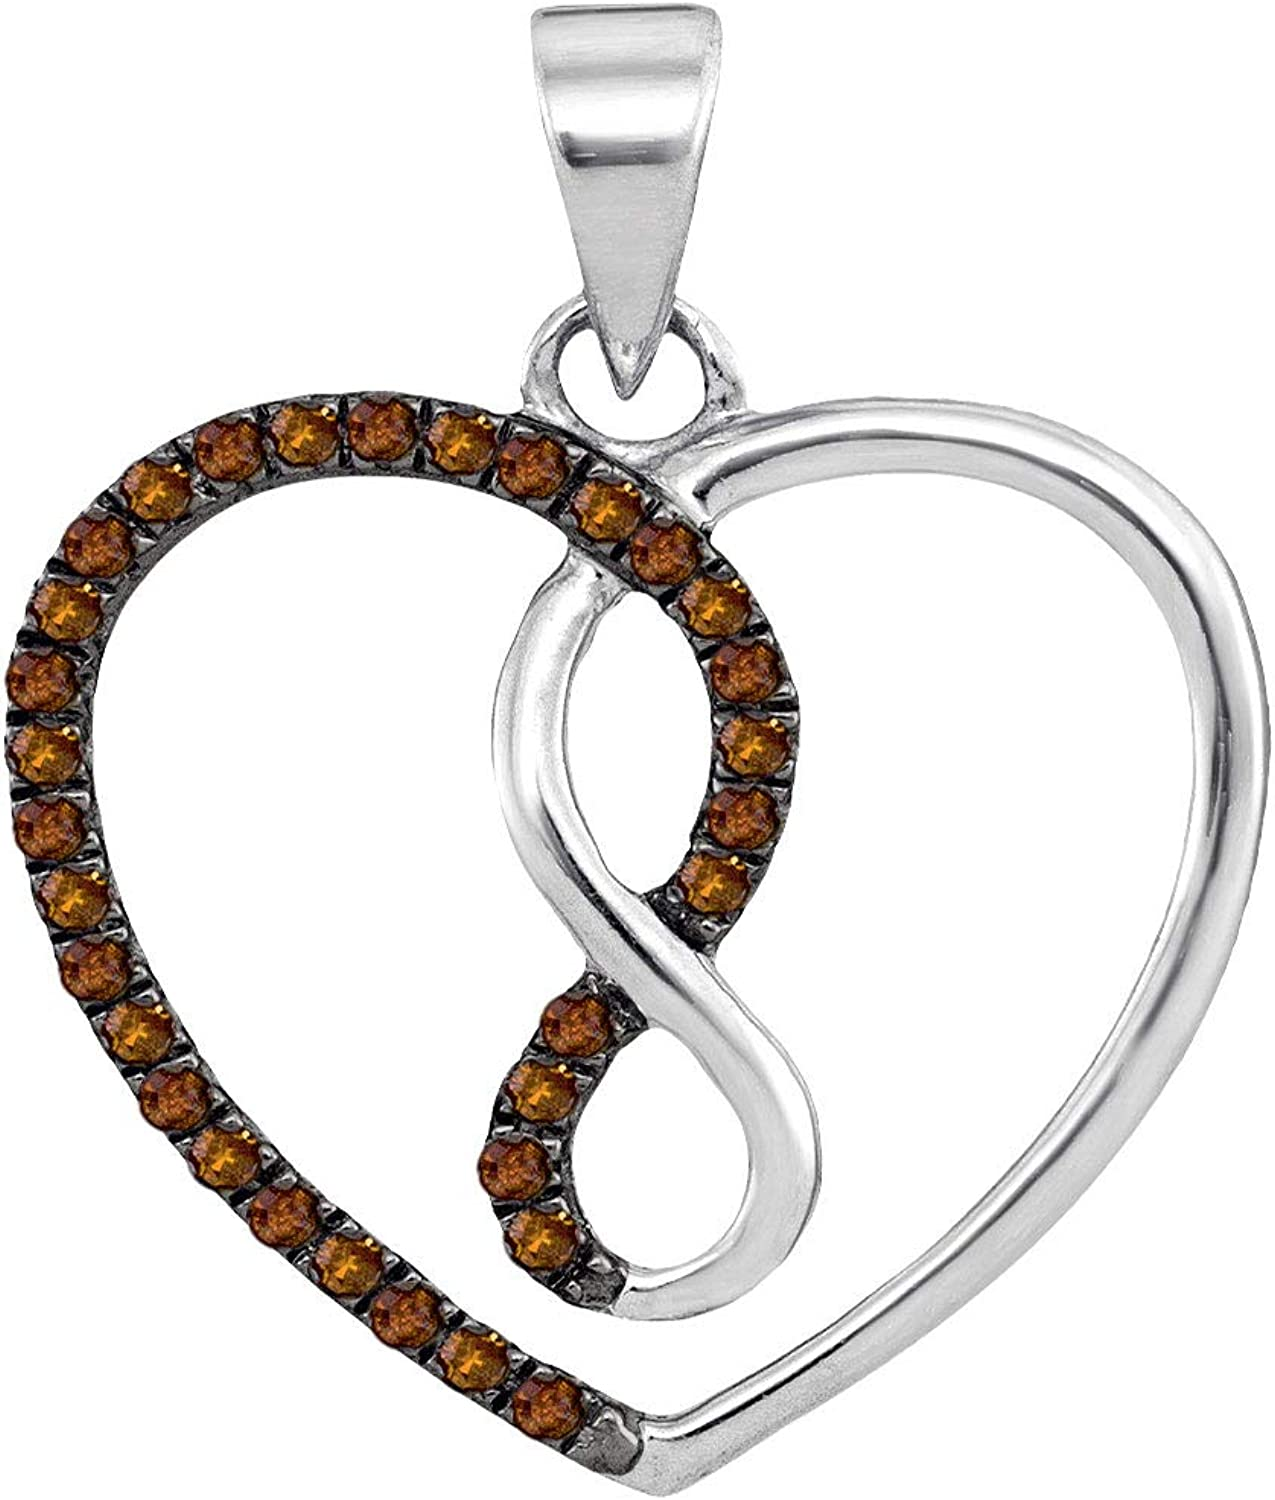 10kt White gold Womens Round Cognacbrown color Enhanced Diamond Heart Infinity Pendant 1 8 Cttw